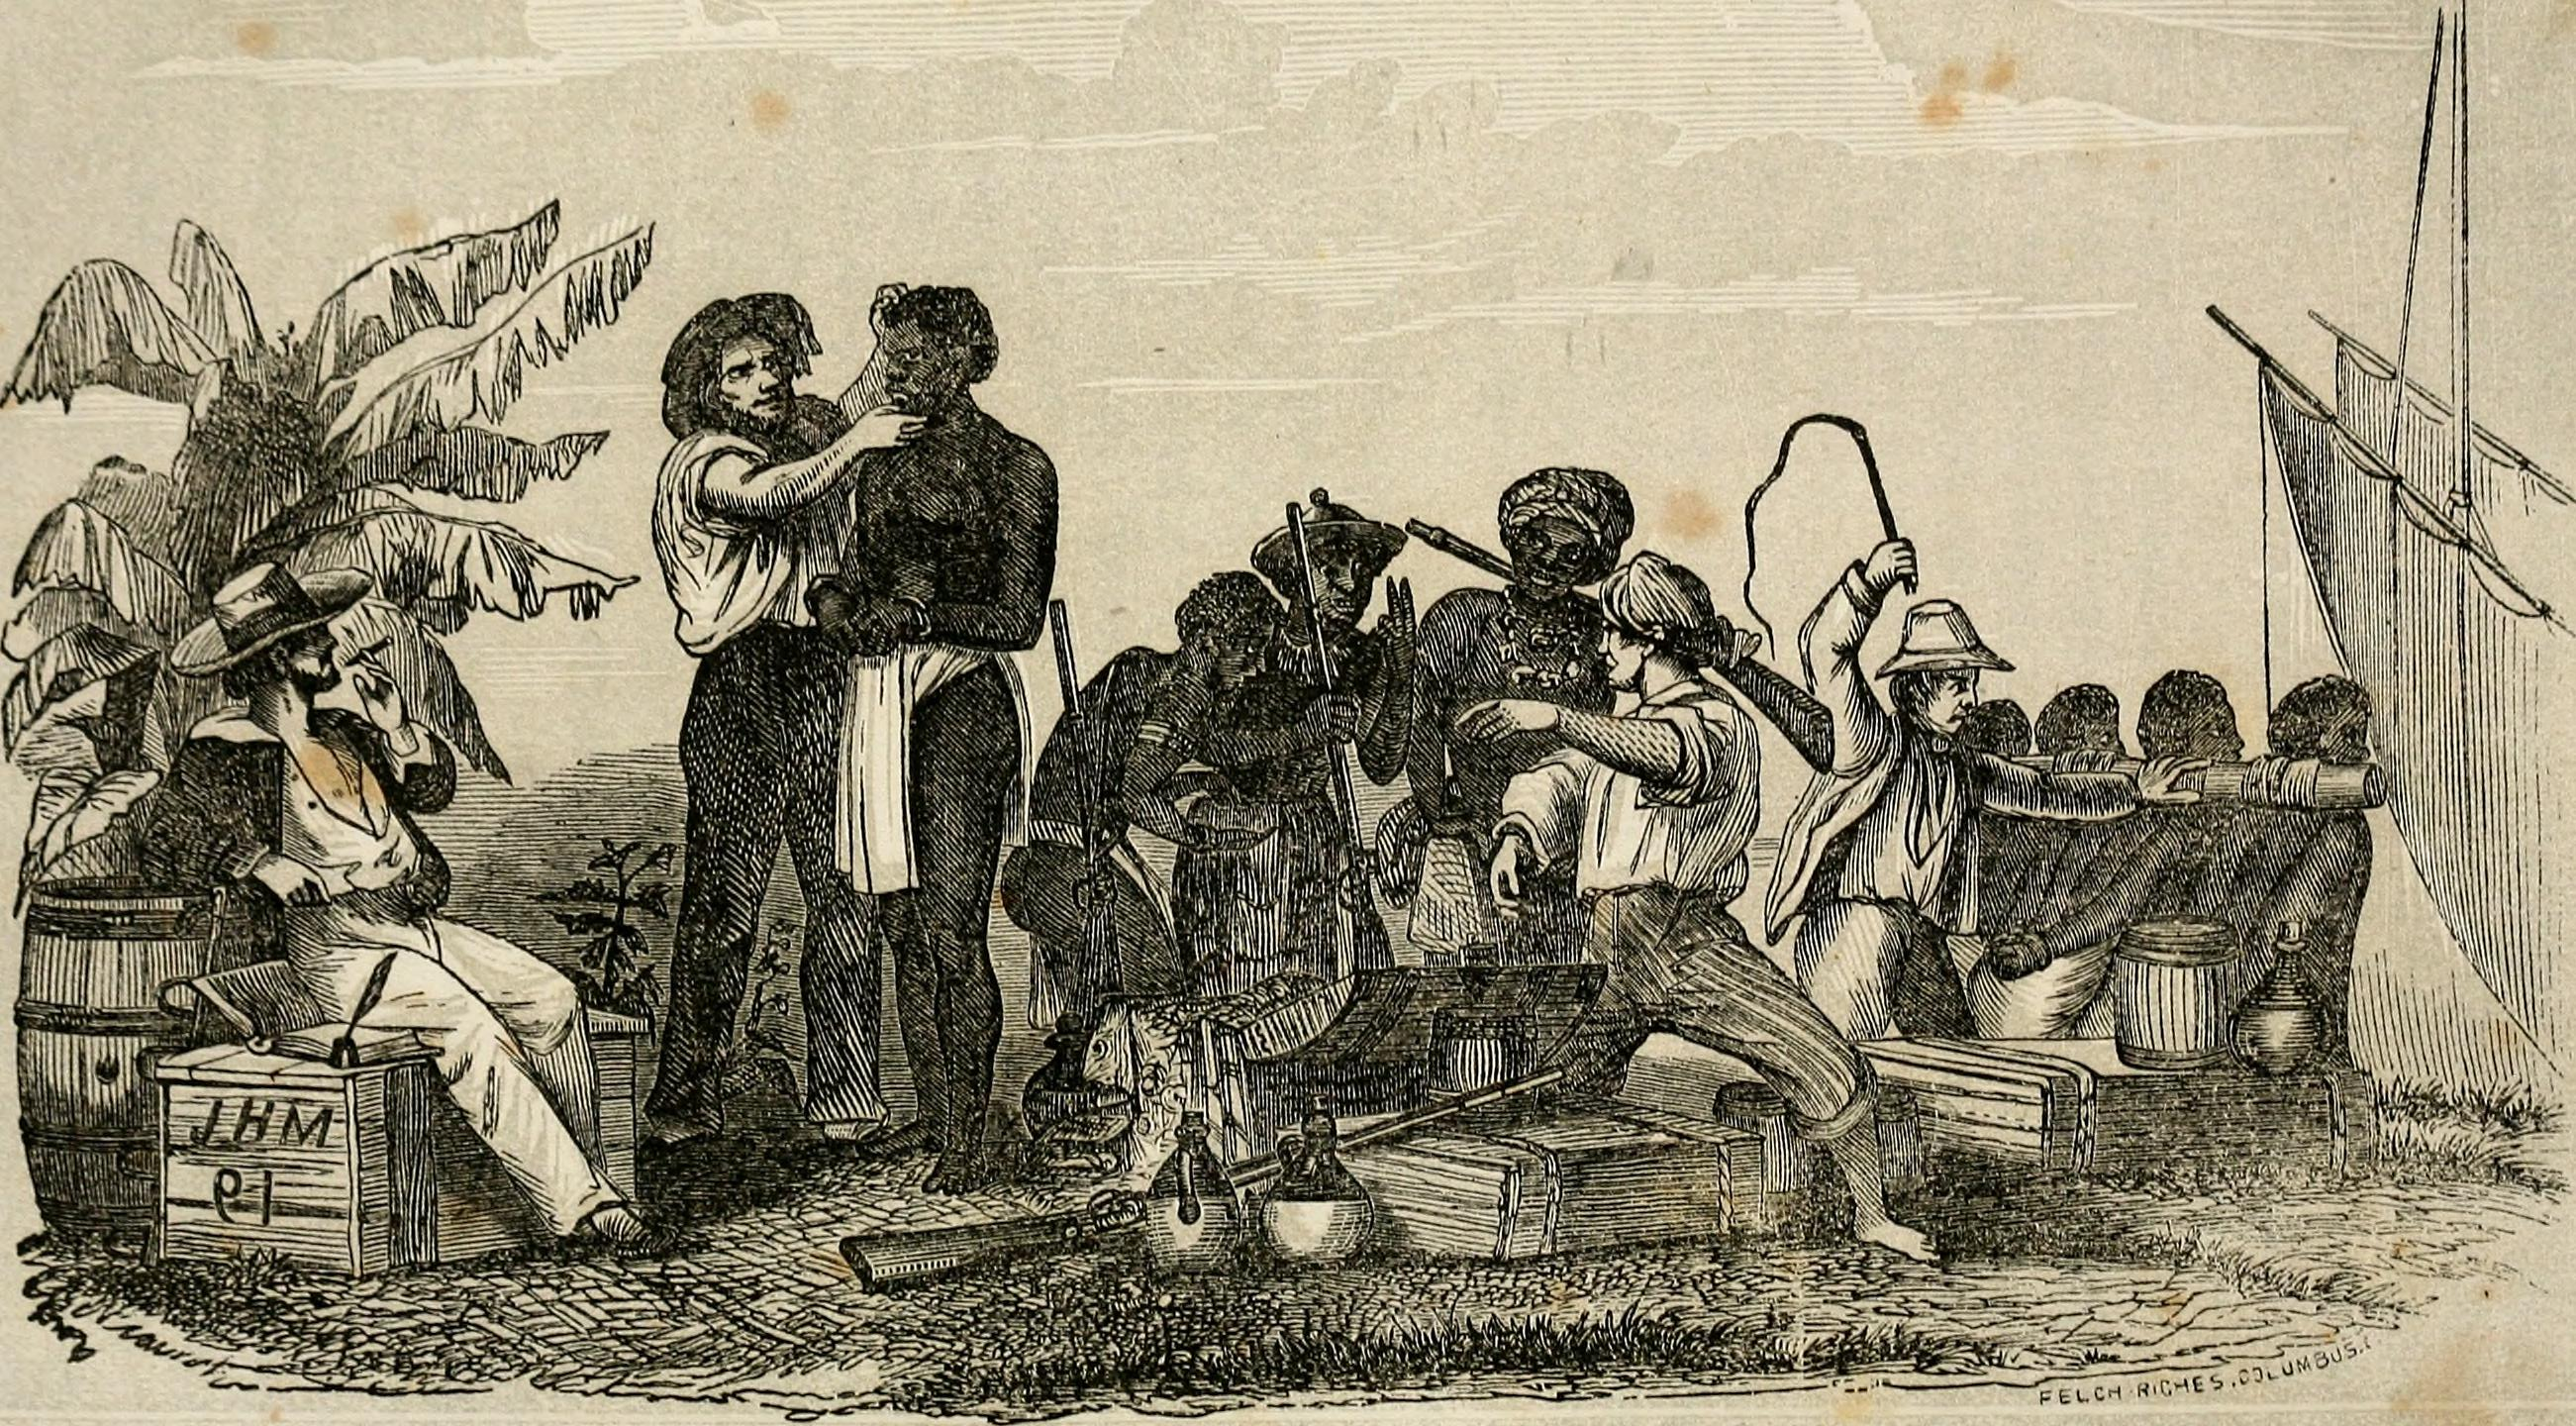 the history of african slavery From slavery to freedom: the african-american pamphlet collection, 1822-1909 presents 397 pamphlets published from 1822 through 1909 most pamphlets were written by african-american authors.